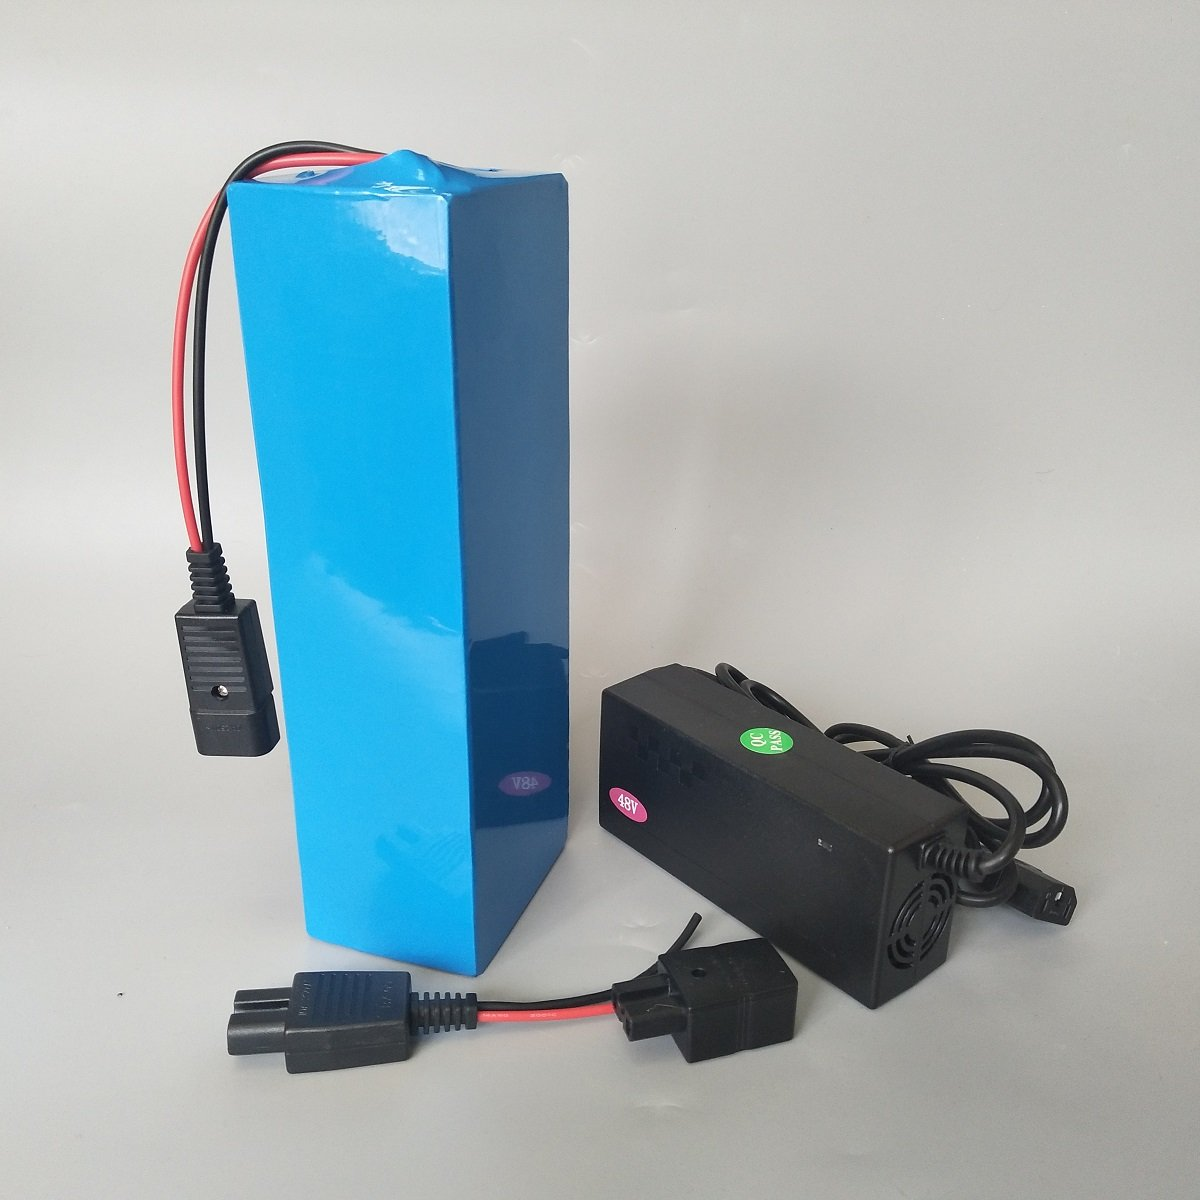 SUN-CYCLE 48V 52V 10AH Li-ion Lithium Battery BMS 3A Charger Rechargeable Electric Scooter Bicycle 350w 500w ebike Motorcycle Motor